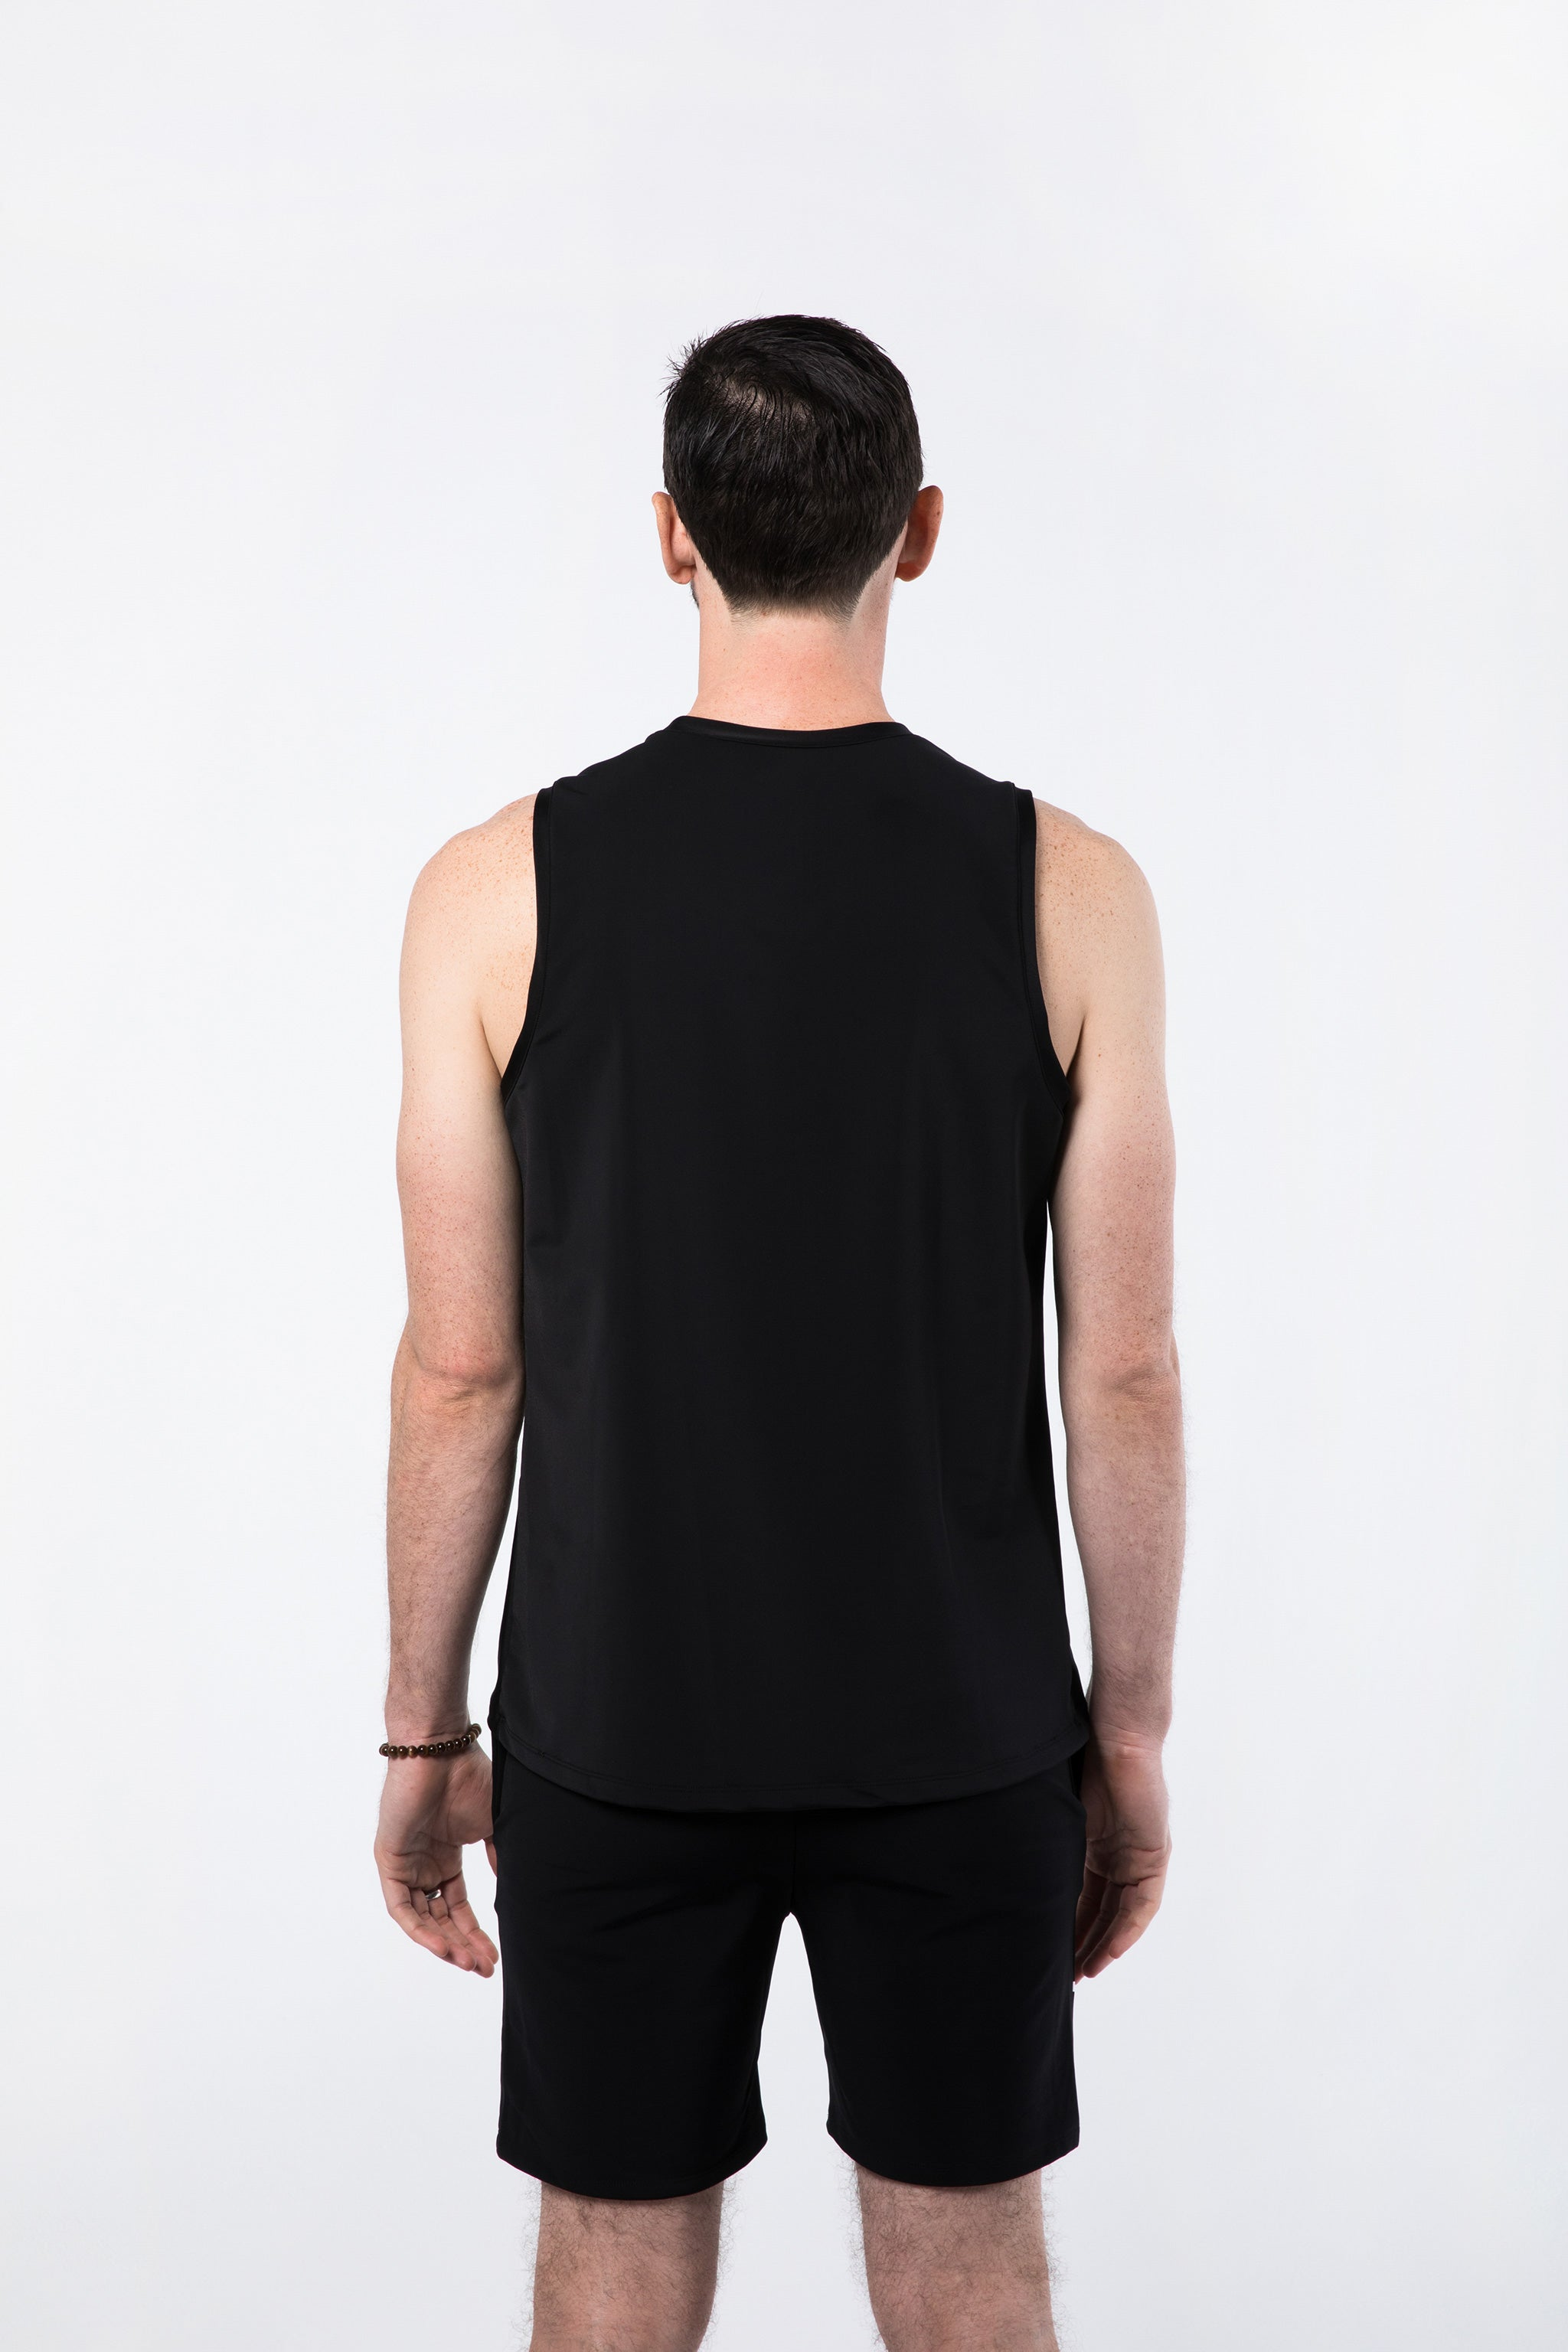 Yoga Muscle Shirt for Men (Back View)